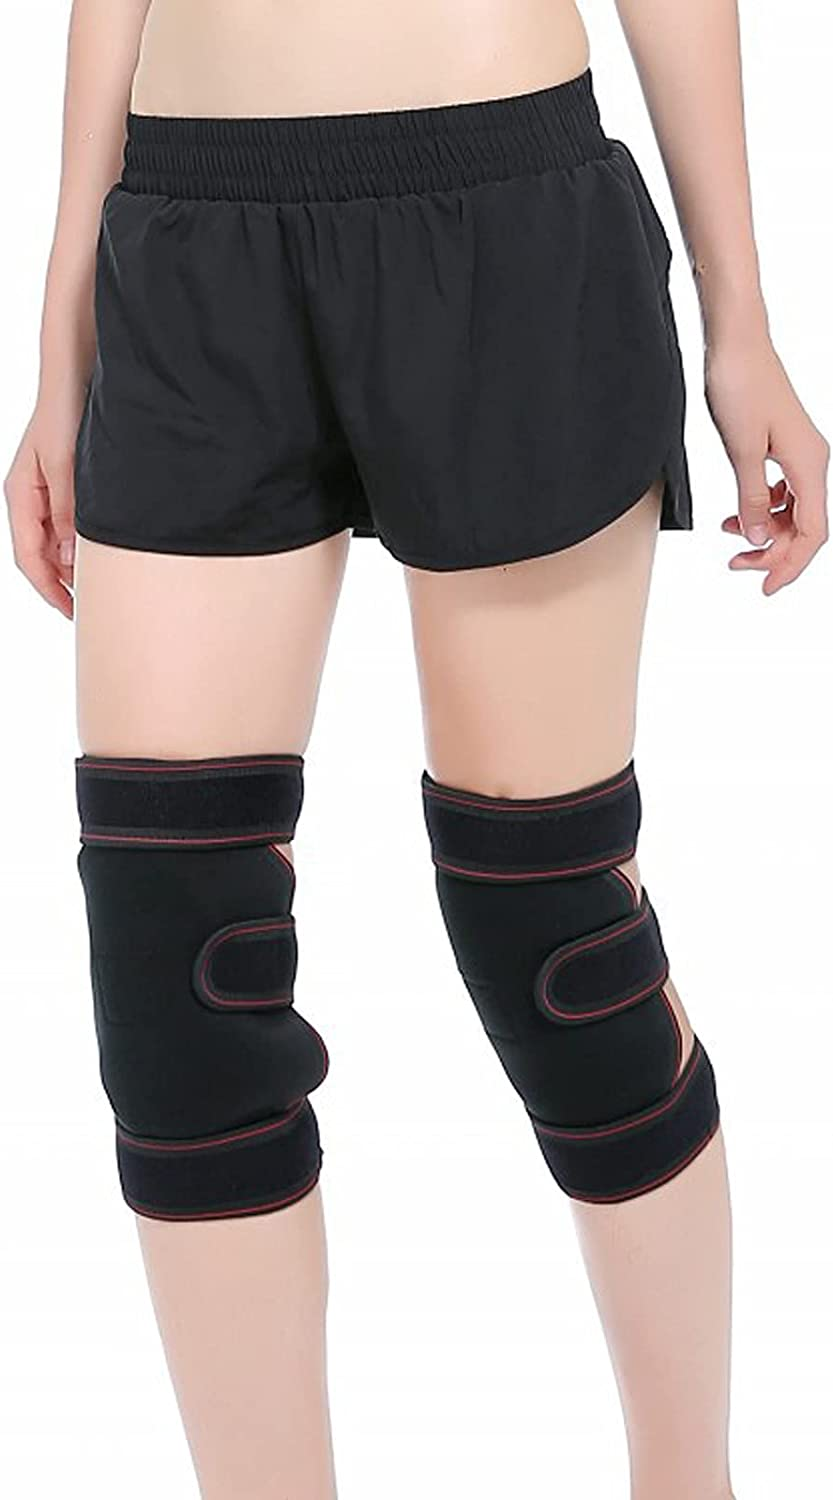 Inventory cleanup selling sale LKKHOSC Knee Pads Adjustable Kansas City Mall Open and for Patella Men